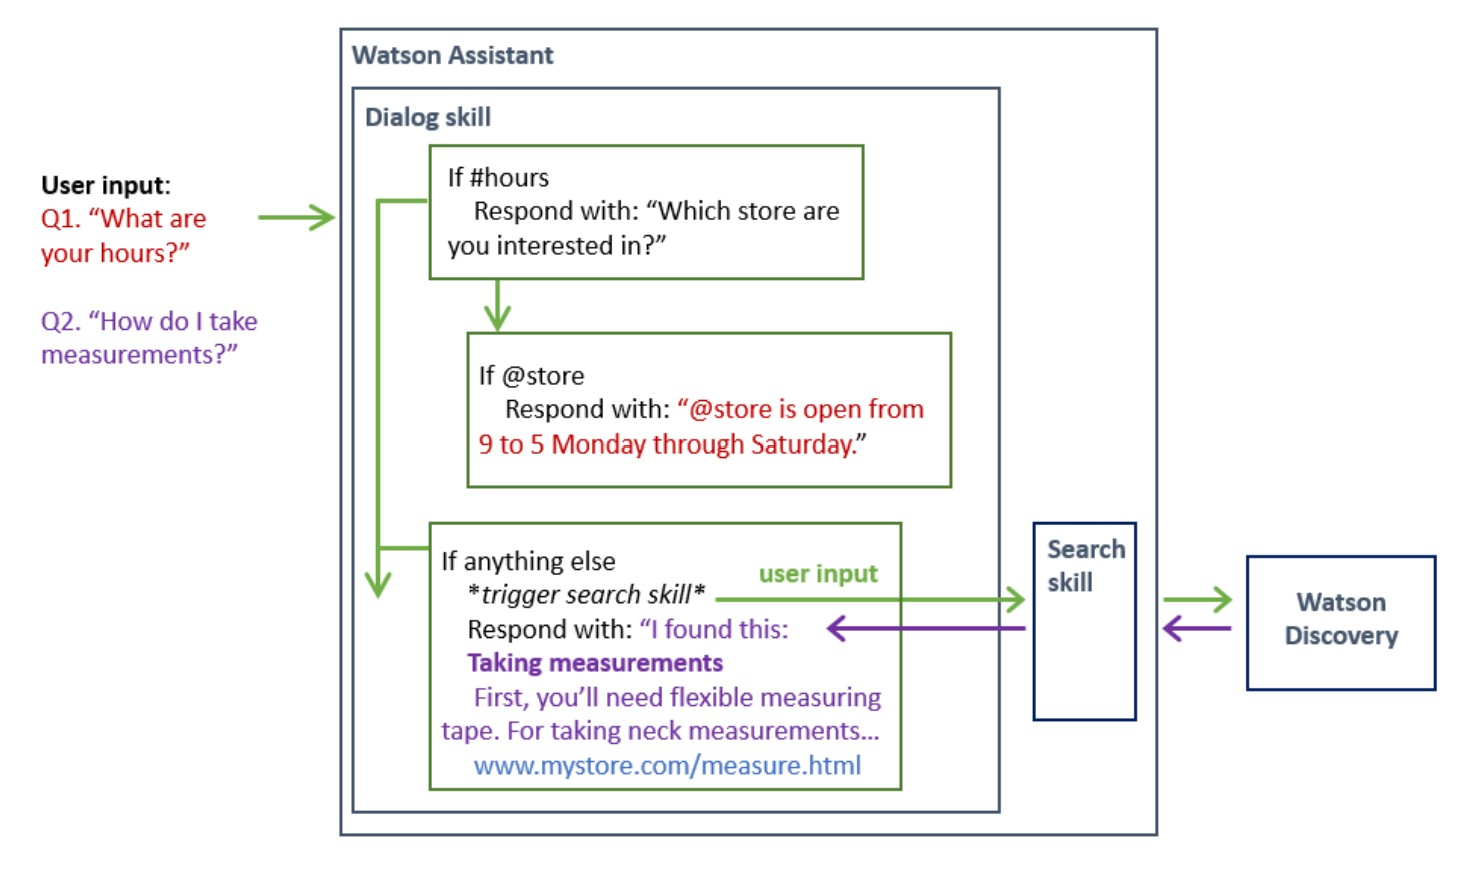 A diagram showing how the Watson assistant research ability works